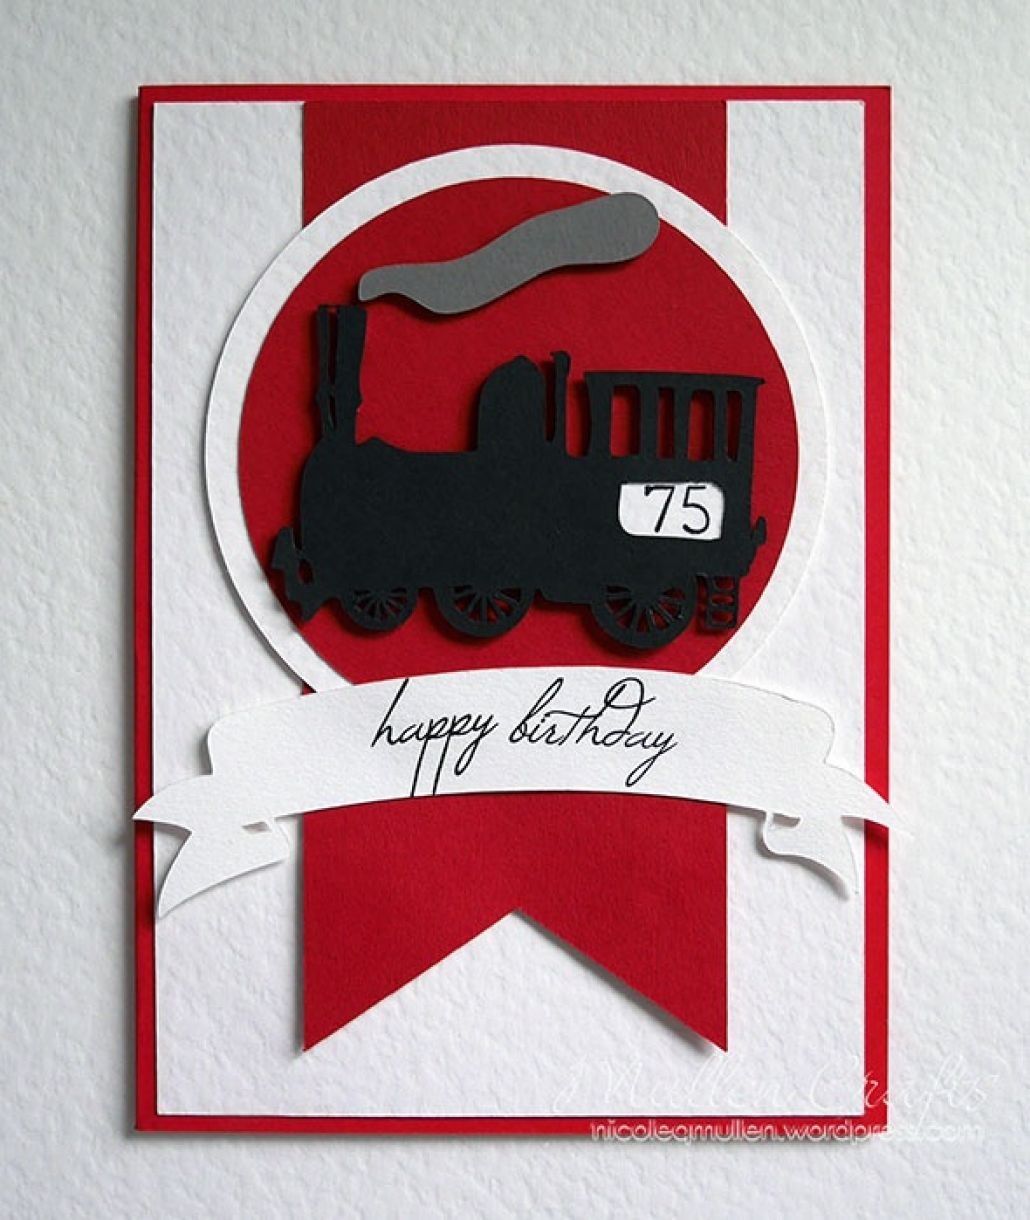 Train Bday Card Nicole 1